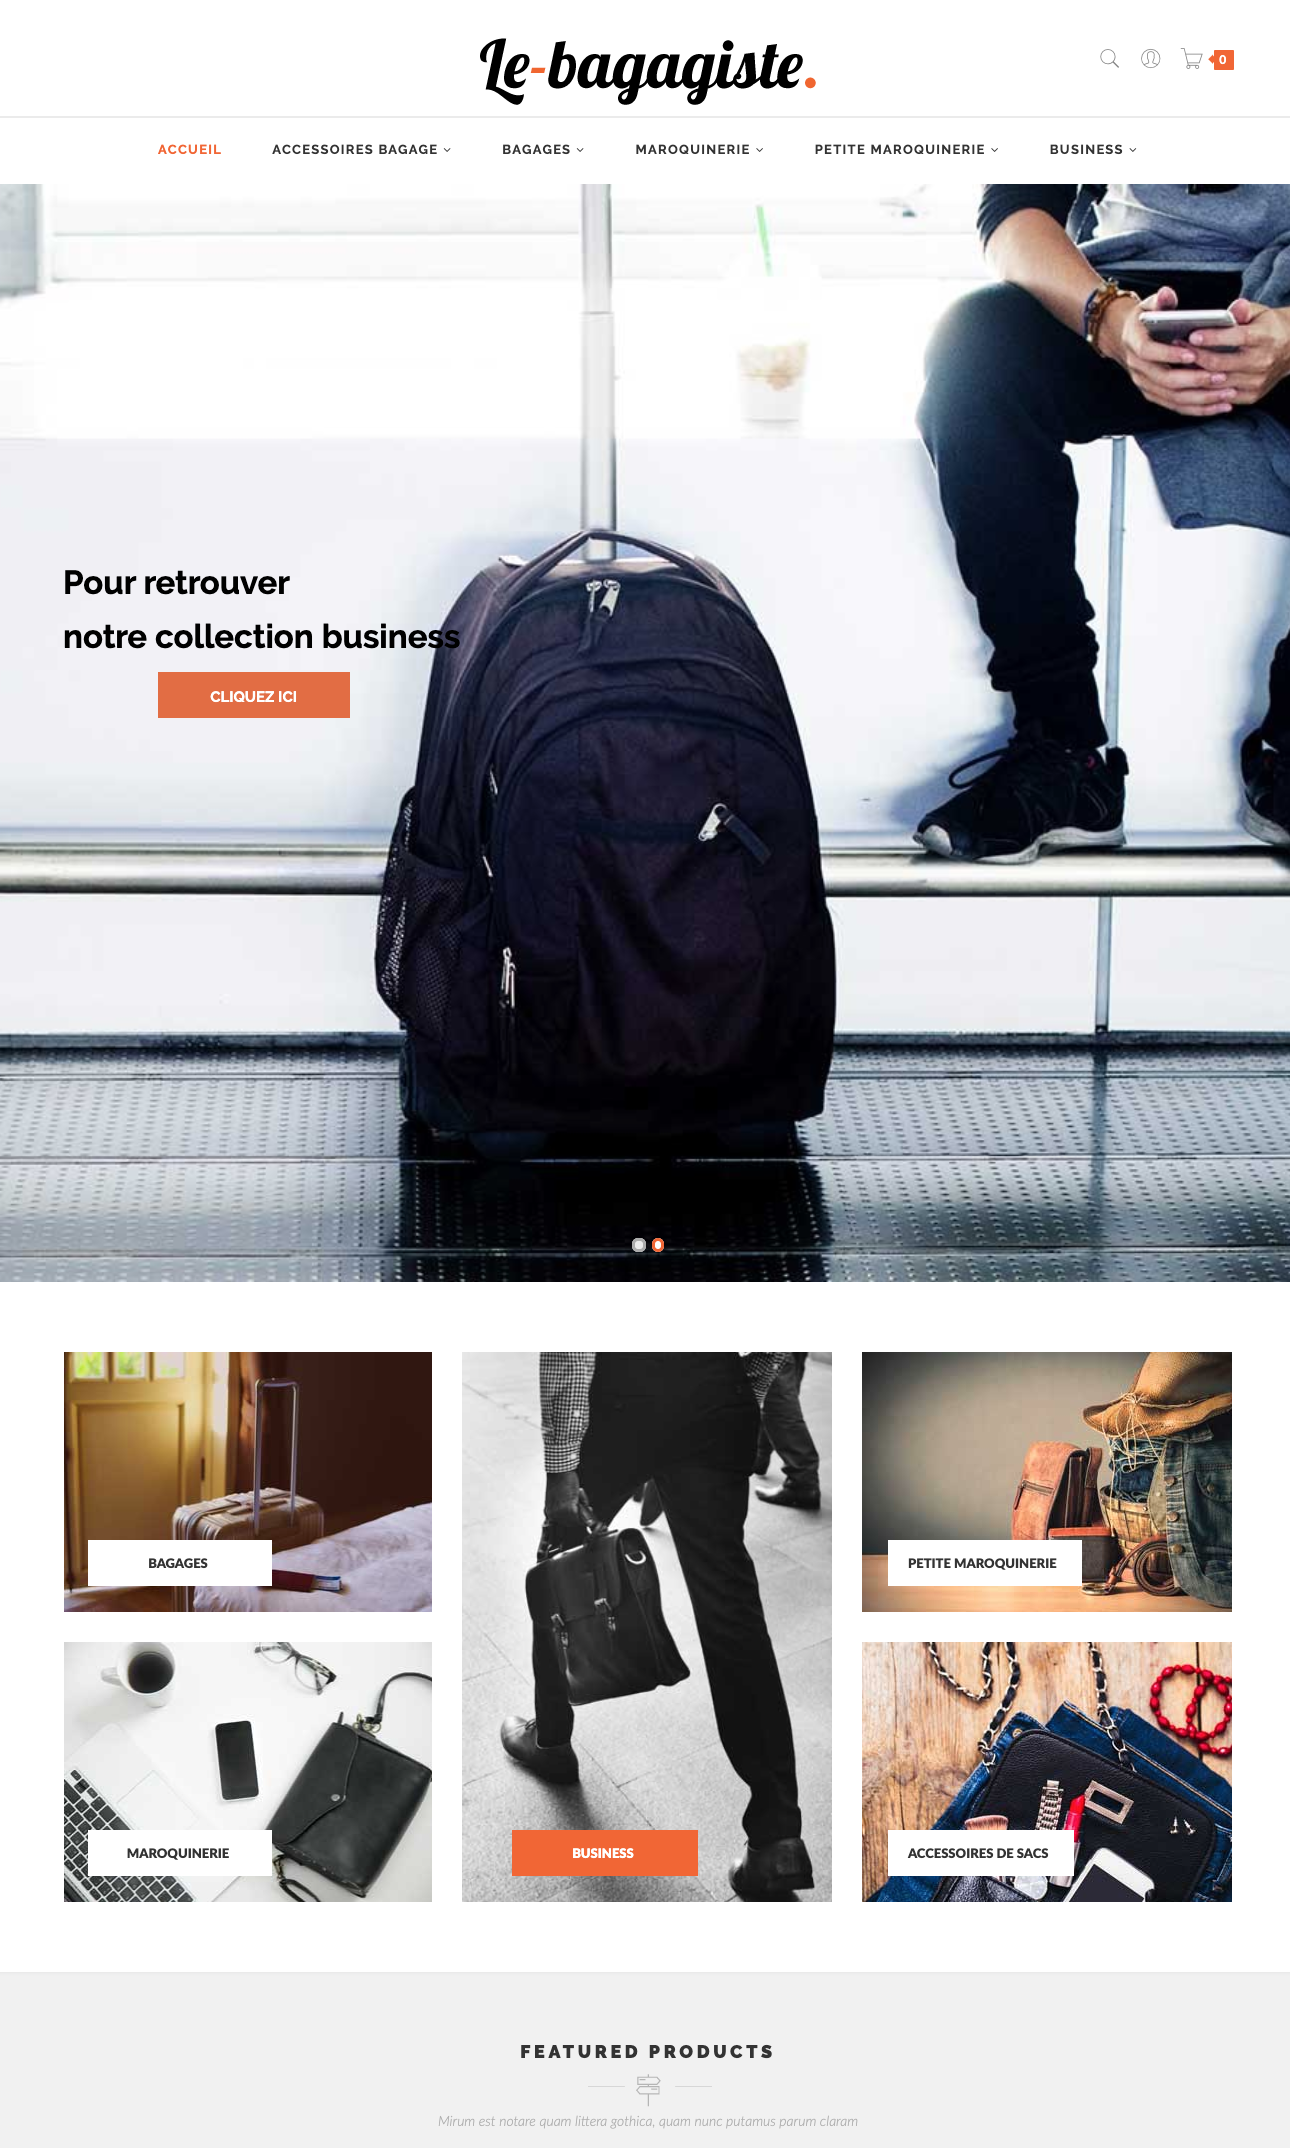 le-bagagiste dropshipping valise maroquinerie bagages